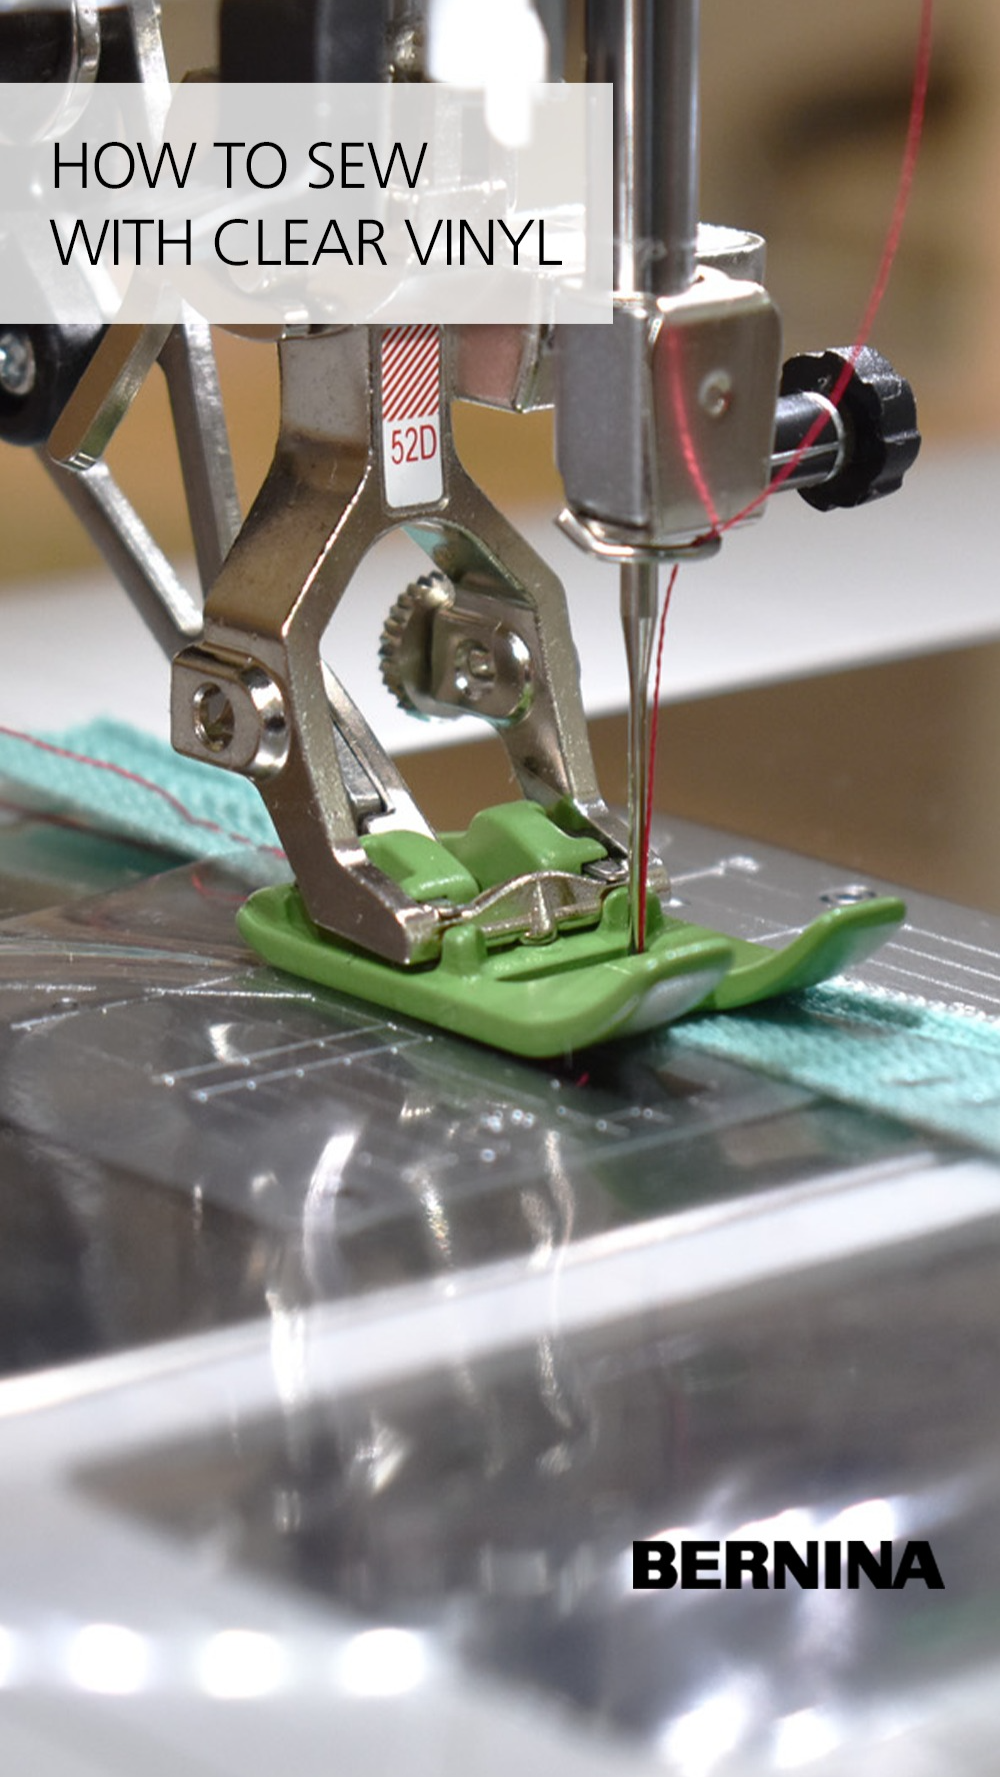 How to Sew with Clear Vinyl